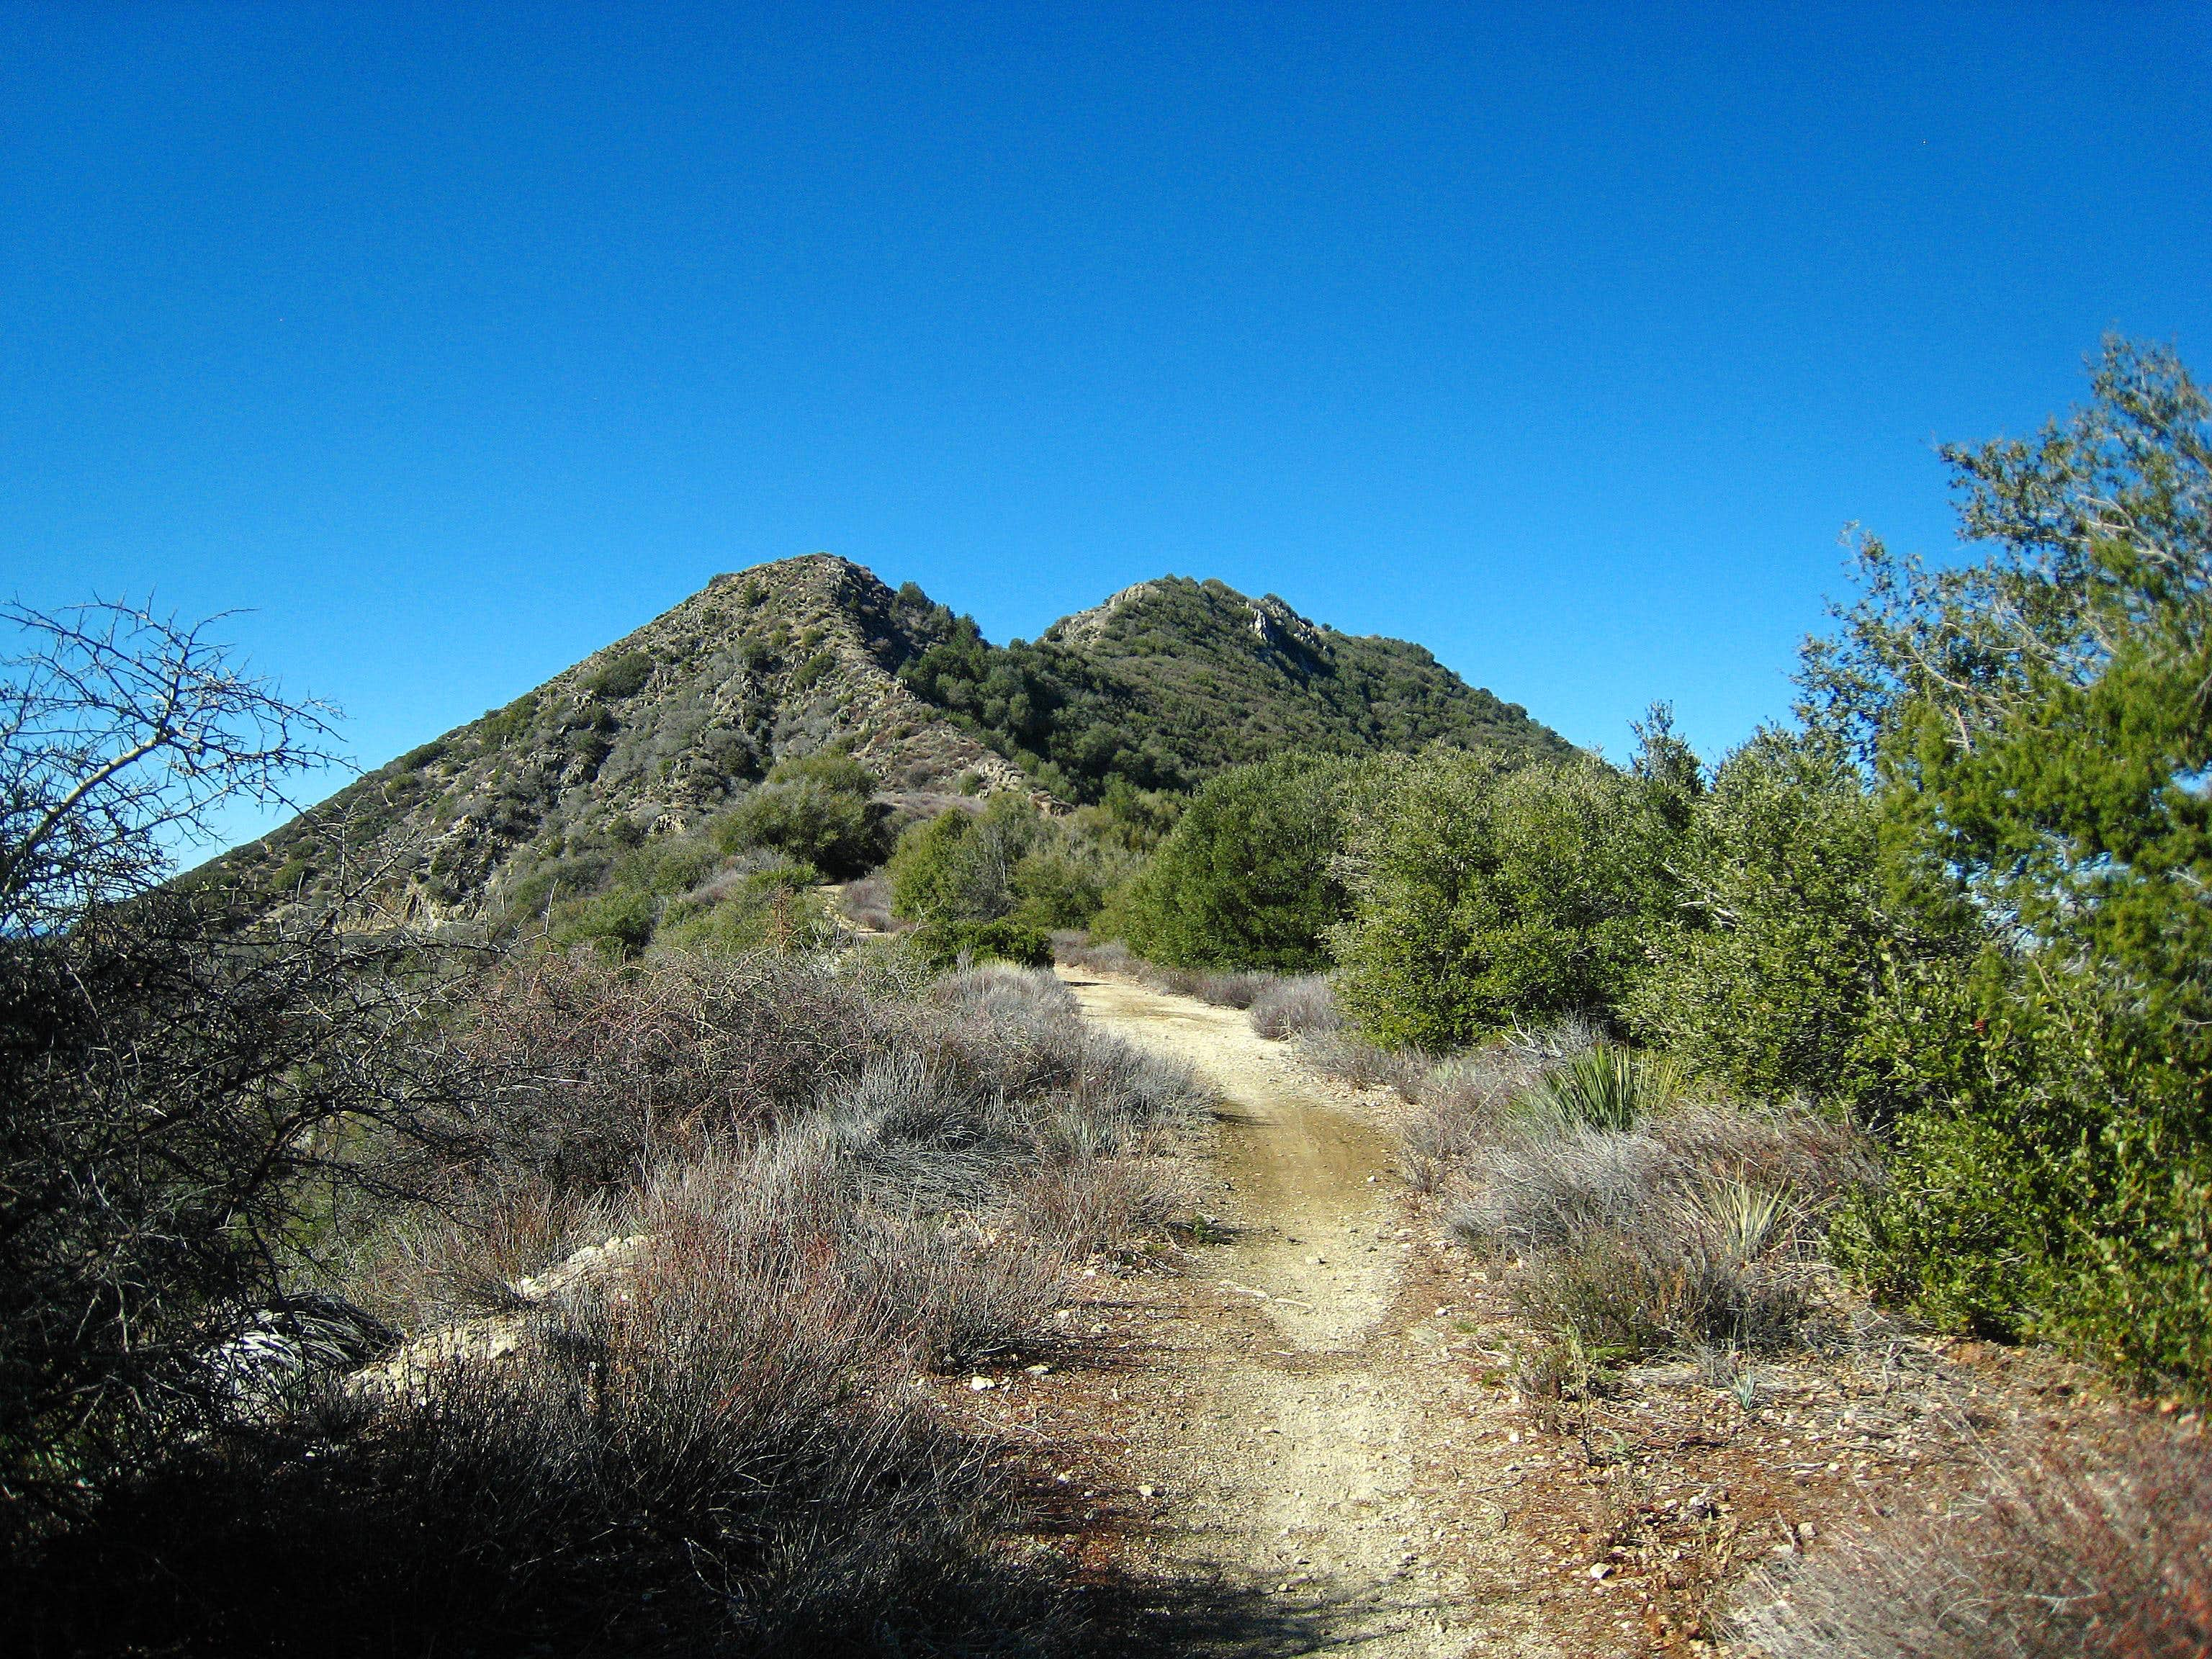 Josephine Peak via Colby Canyon